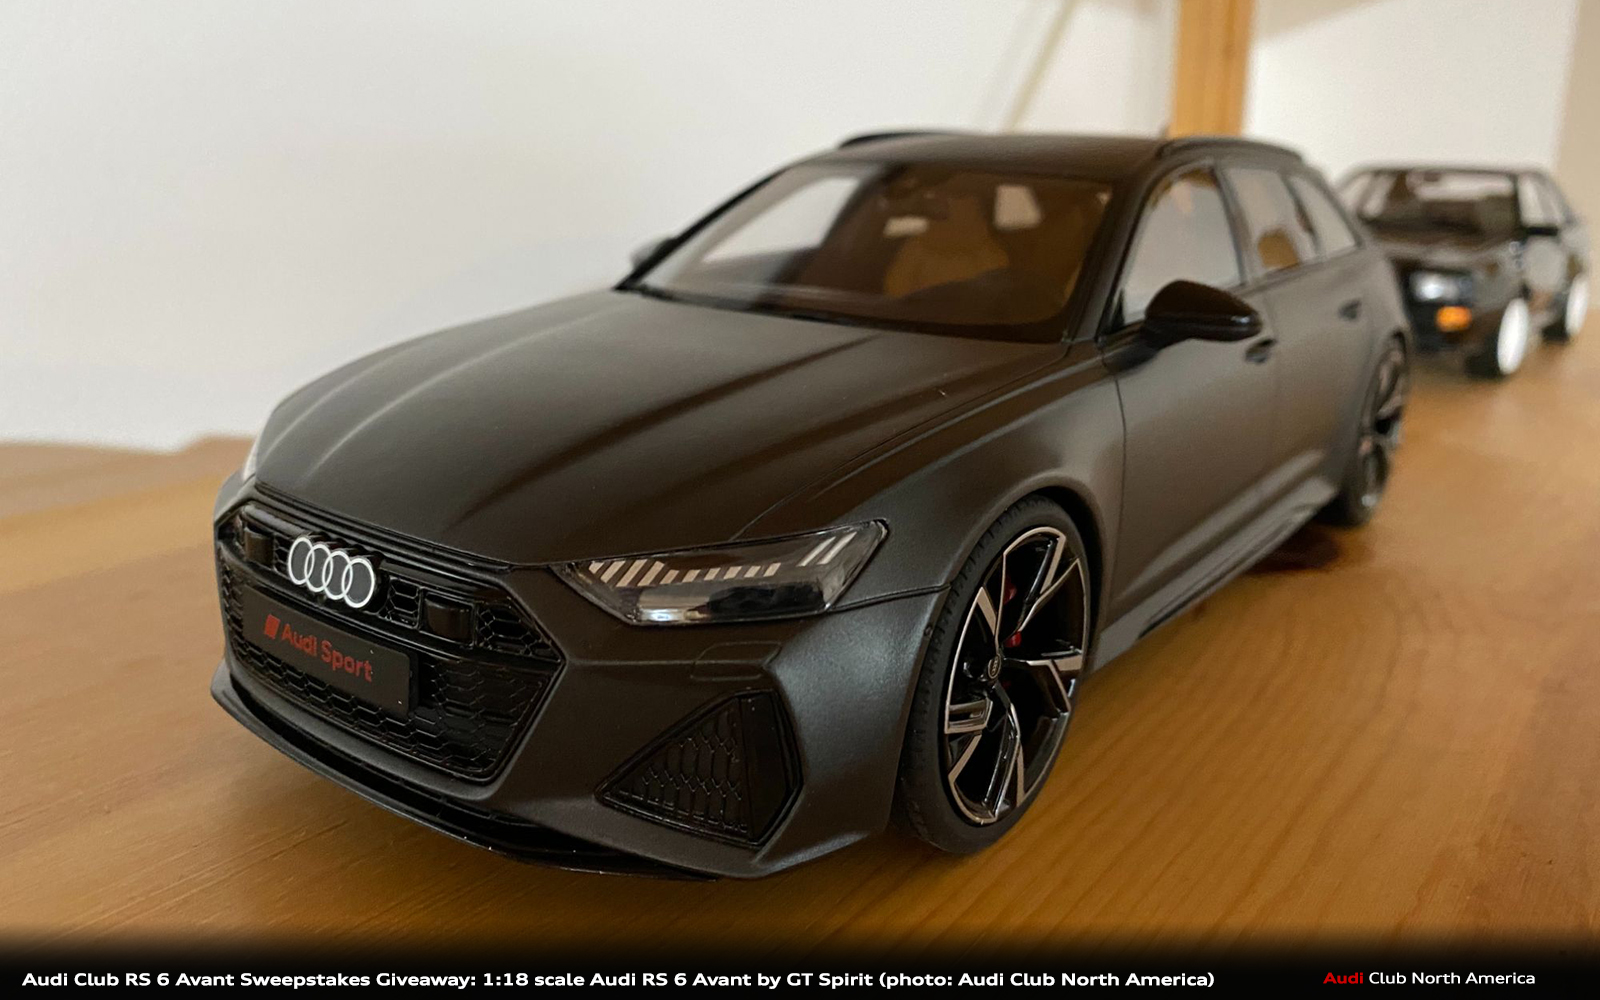 The Winner of the 1:18 Scale Matte Daytona Grey Audi RS 6 Avant Model is (Name) and New Promotion Announcement!